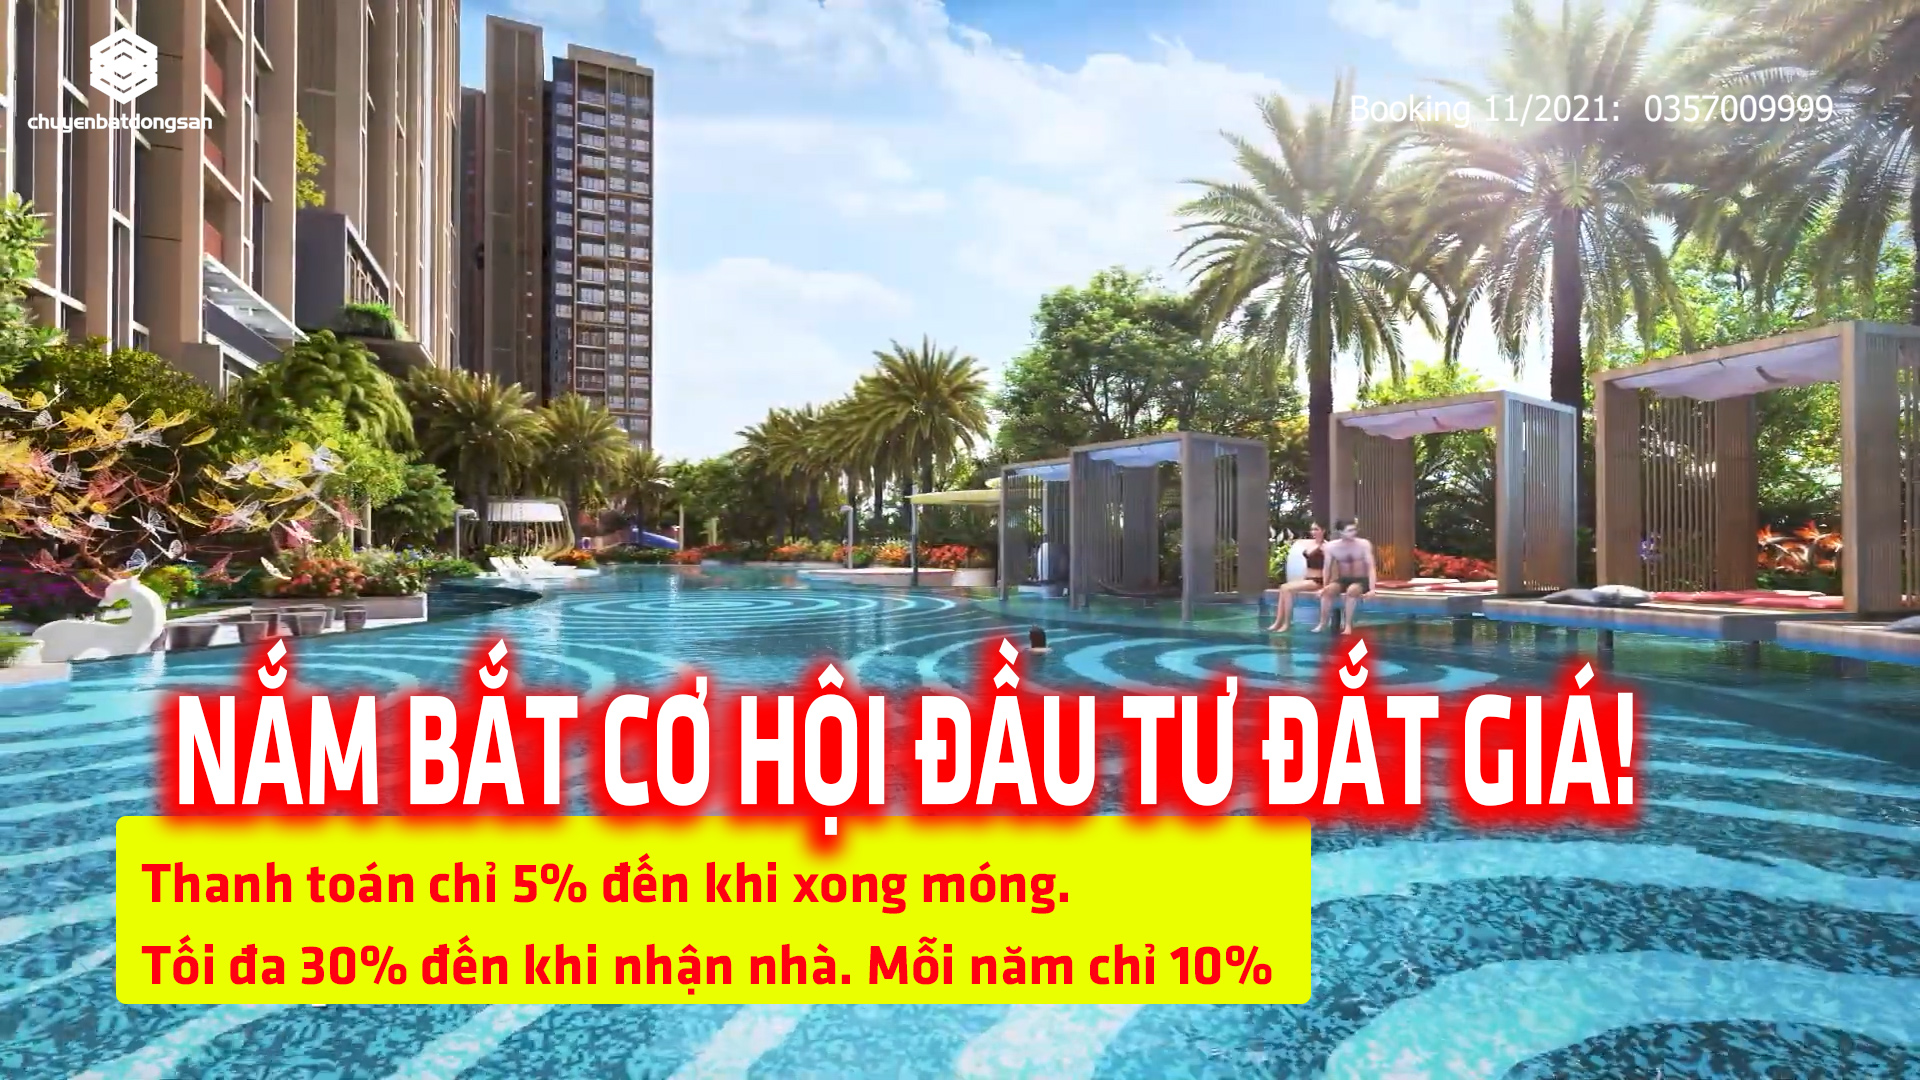 CELESTA HEIGHTS: booking tháng 11/2021   0357009999